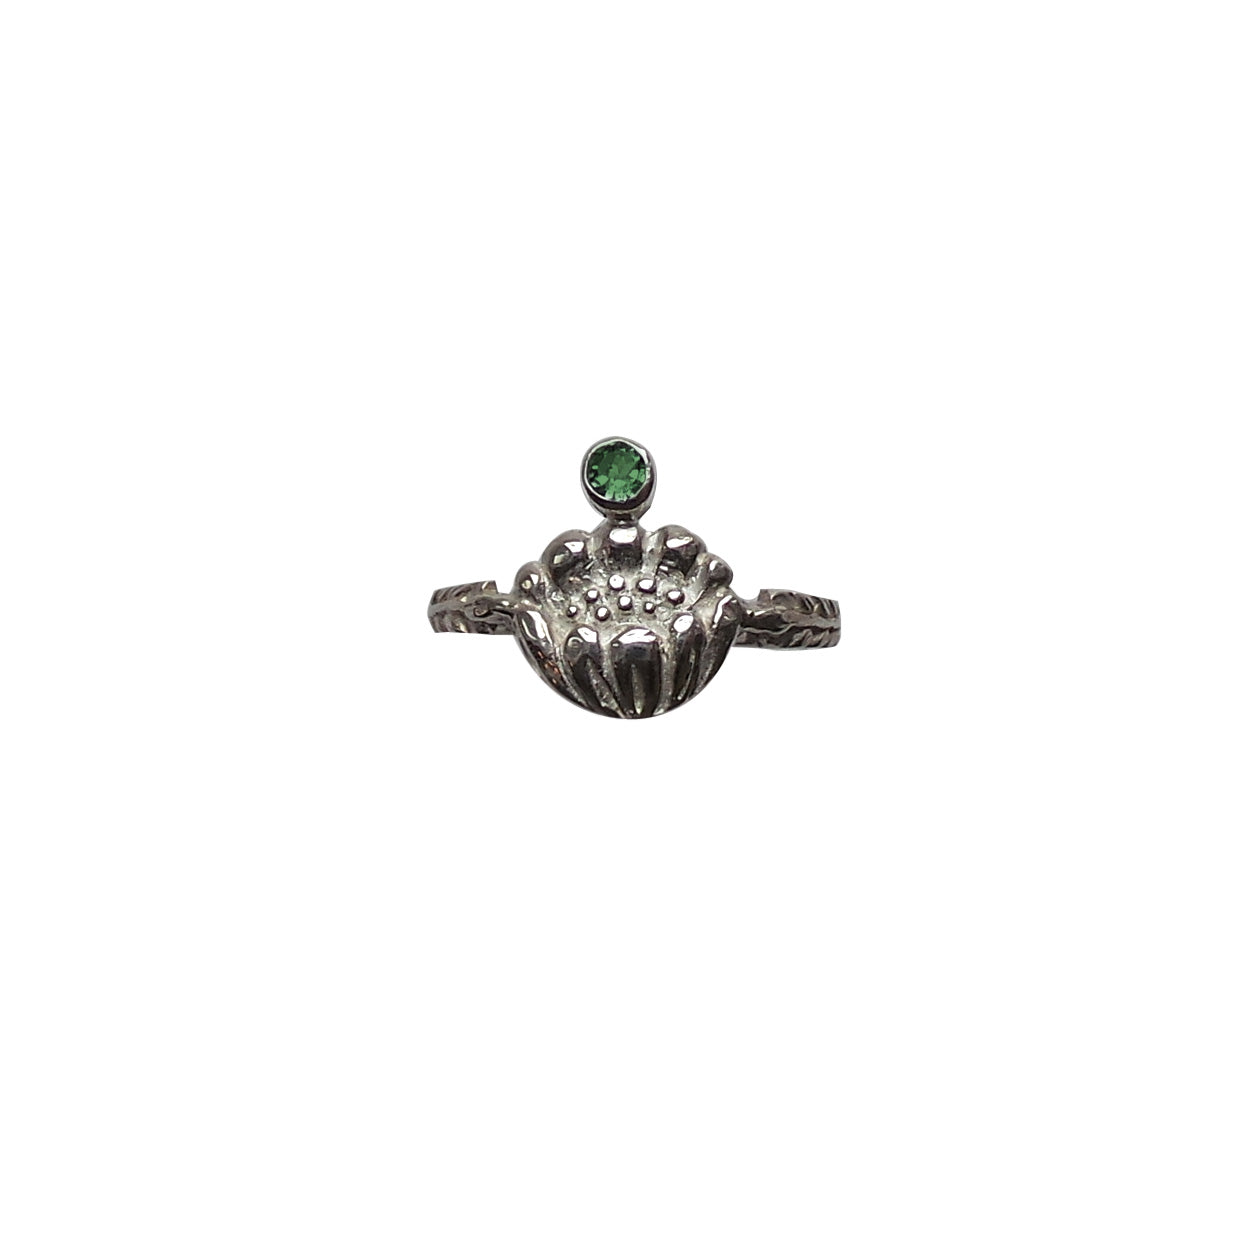 Hunt Of Hounds Adonis Flower Ring in Silver. A flower mounted on a botanical leaf band with gemstone.